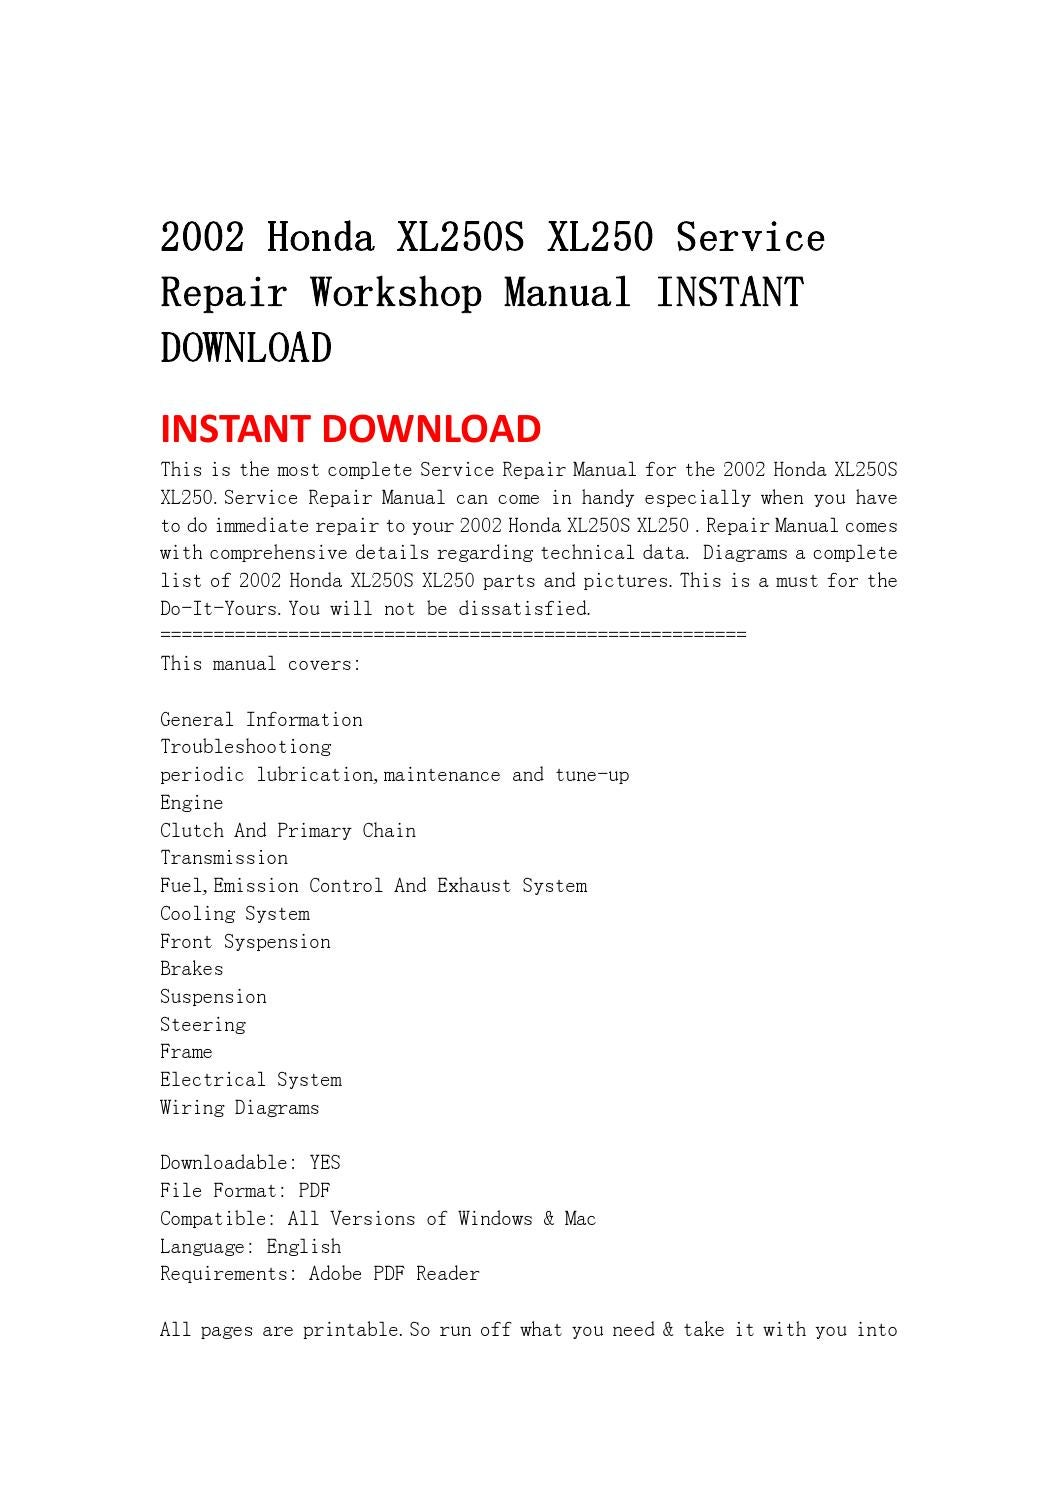 honda ht3810 service manual download